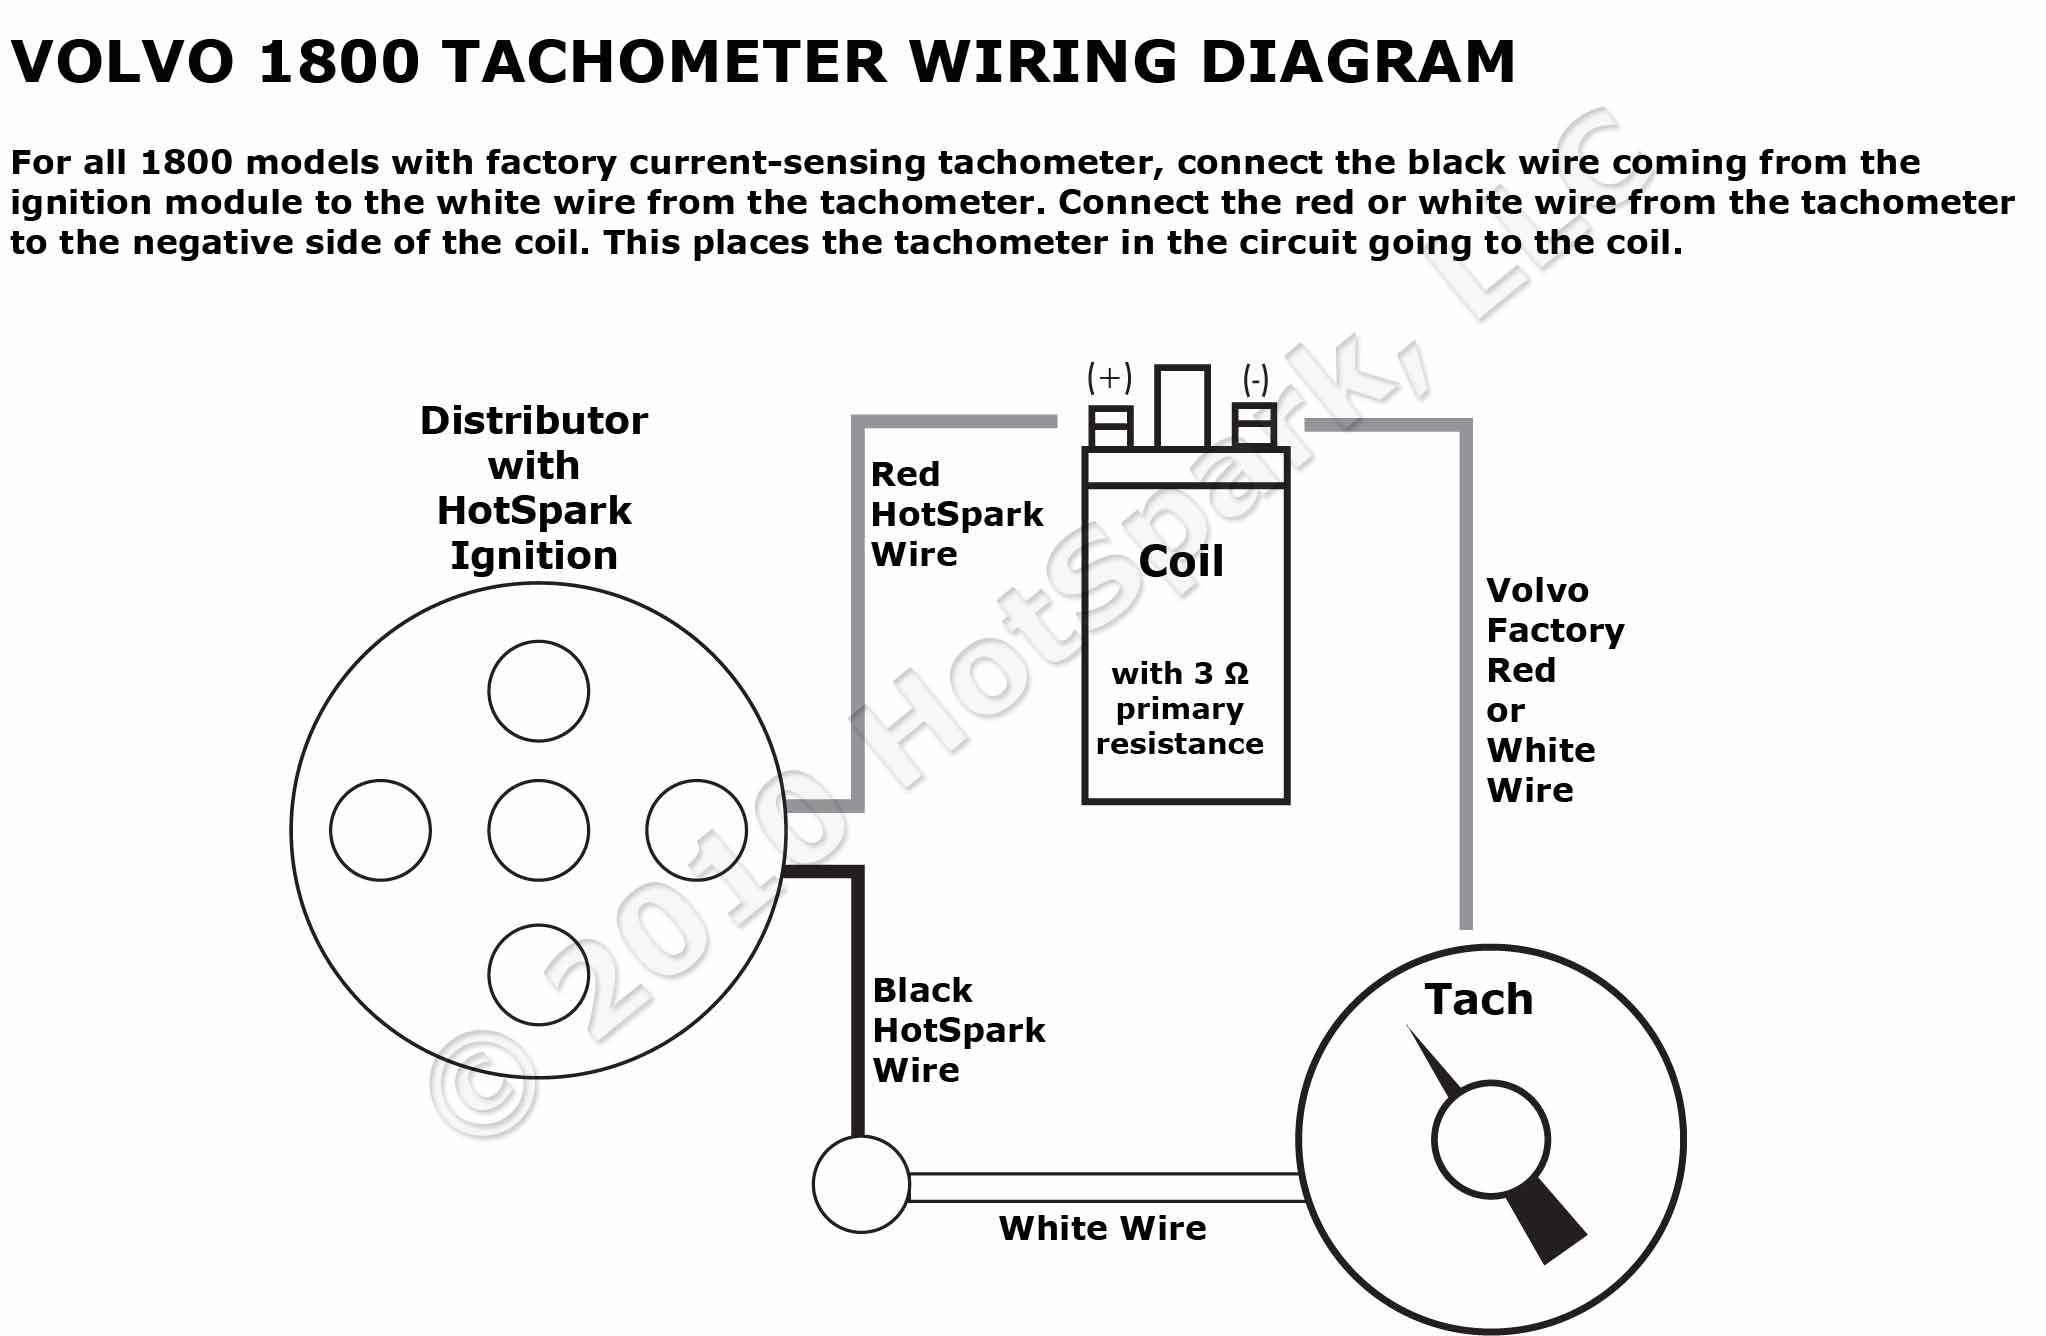 Volvo 1800 Tachometer Wiring Diagram With Hotspark Ignition Medallion Tachometer  Wiring Diagram Tachometer Wiring Diagram